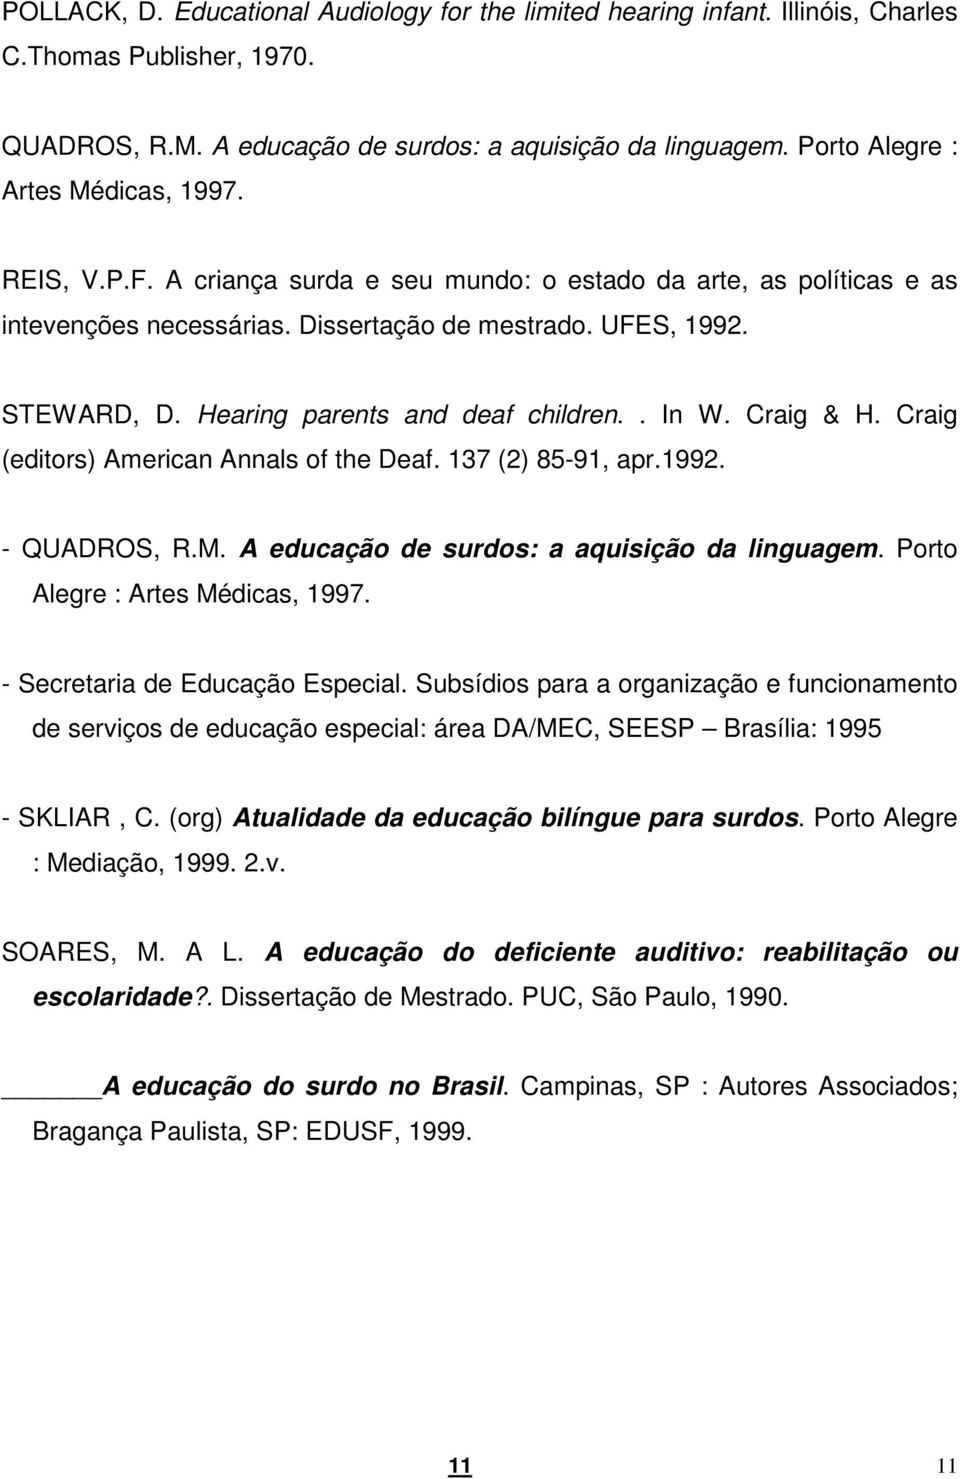 Hearing parents and deaf children.. In W. Craig & H. Craig (editors) American Annals of the Deaf. 137 (2) 85-91, apr.1992. - QUADROS, R.M. A educação de surdos: a aquisição da linguagem.